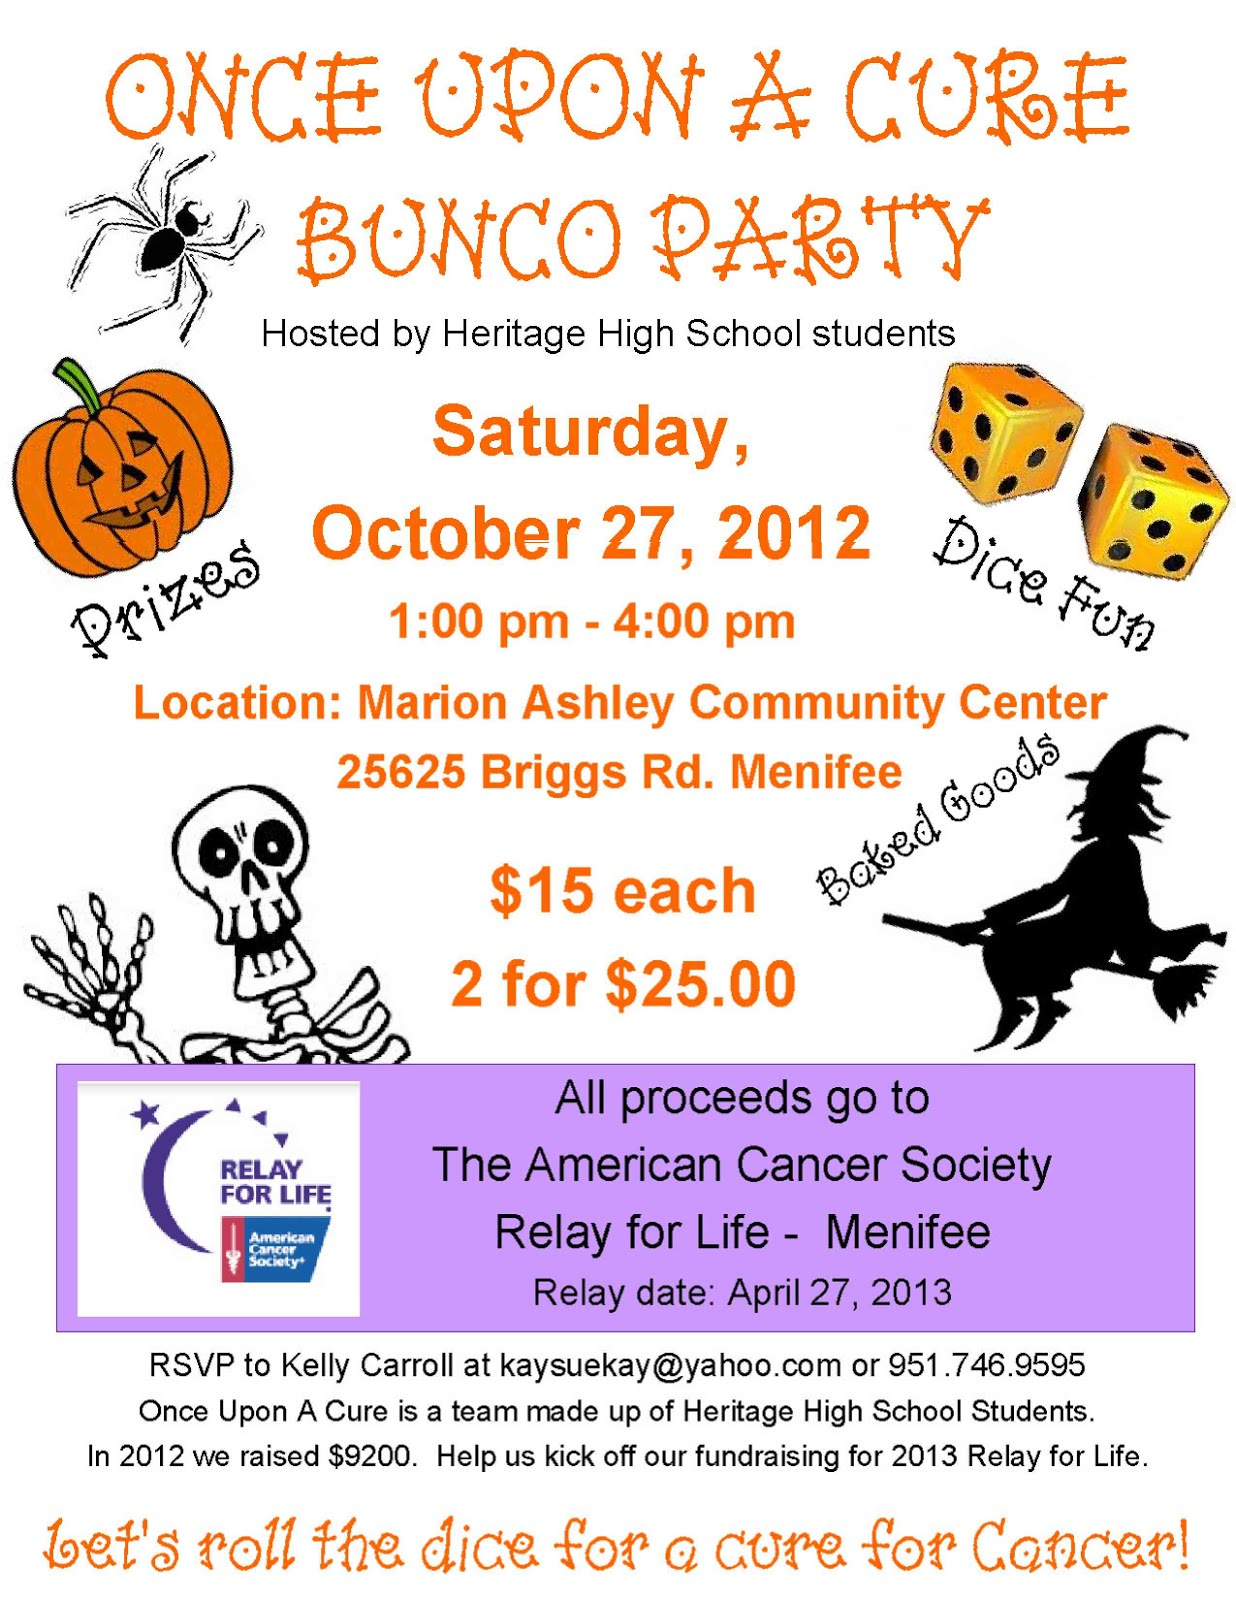 bunco party set to raise funds for relay for life menifee bunco party set to raise funds for relay for life menifee menifee 24 7